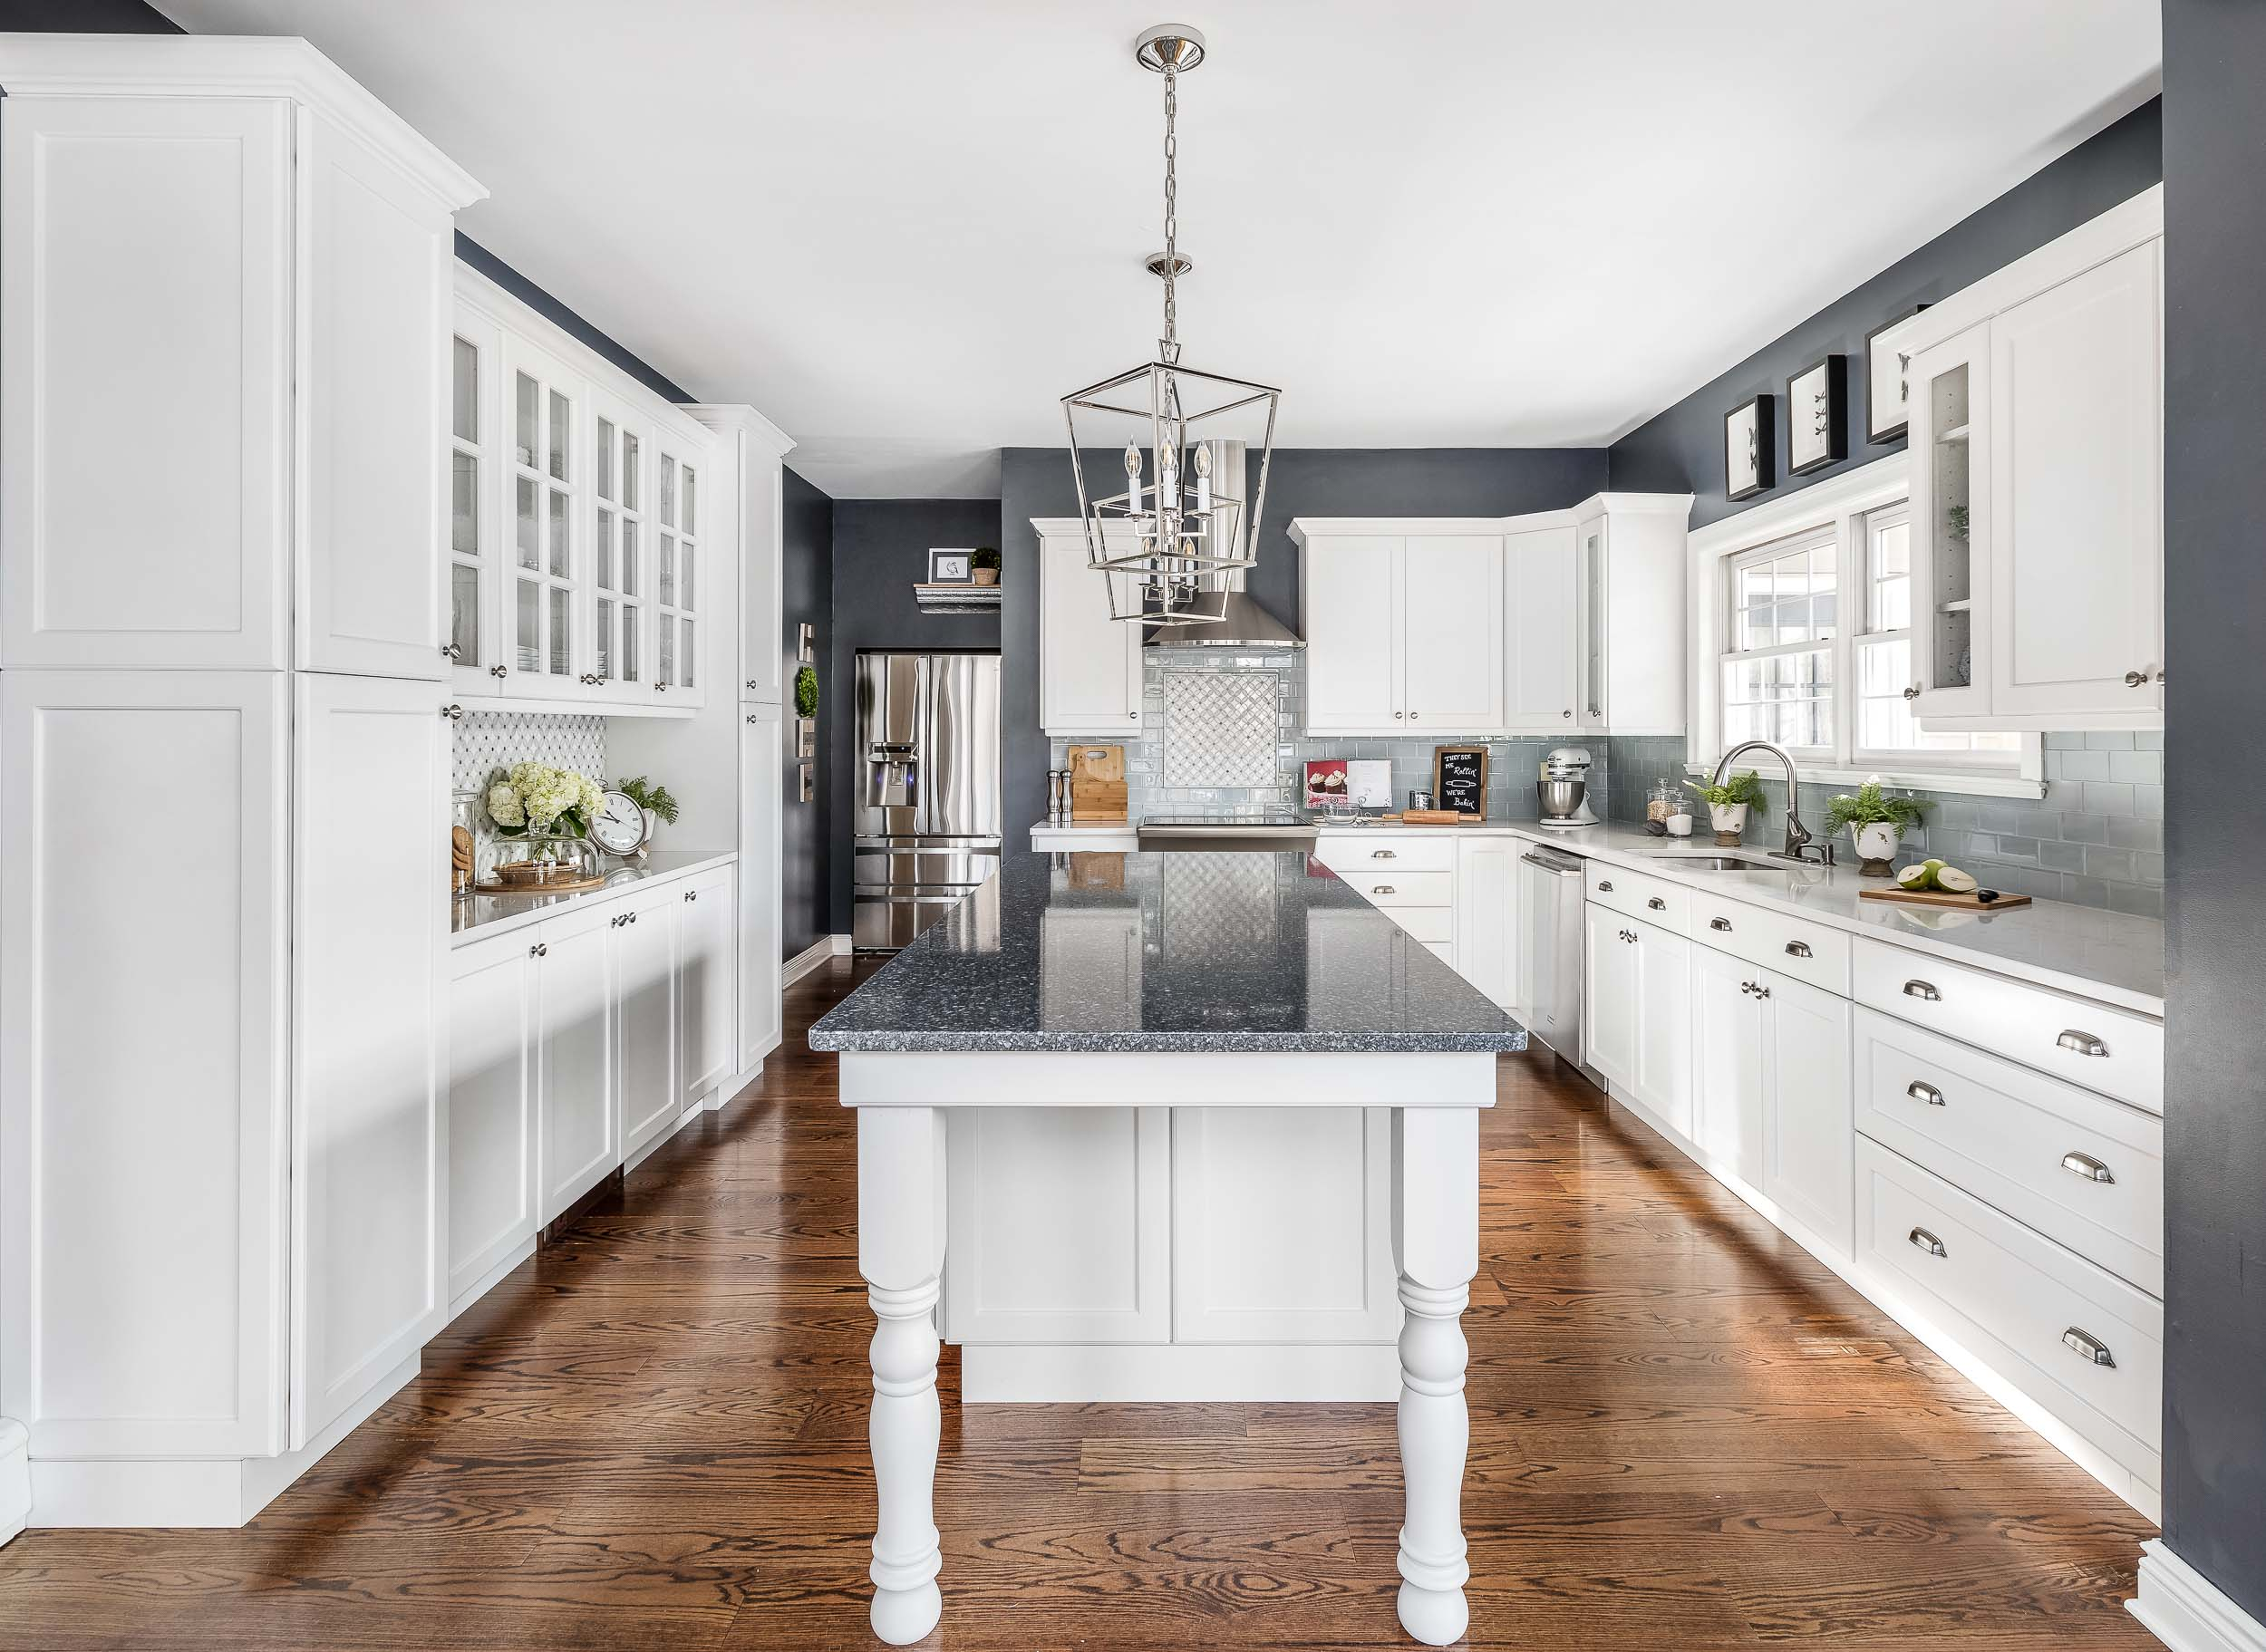 Architectural interiors photography of a renovated kitchen in Nyack, NY.